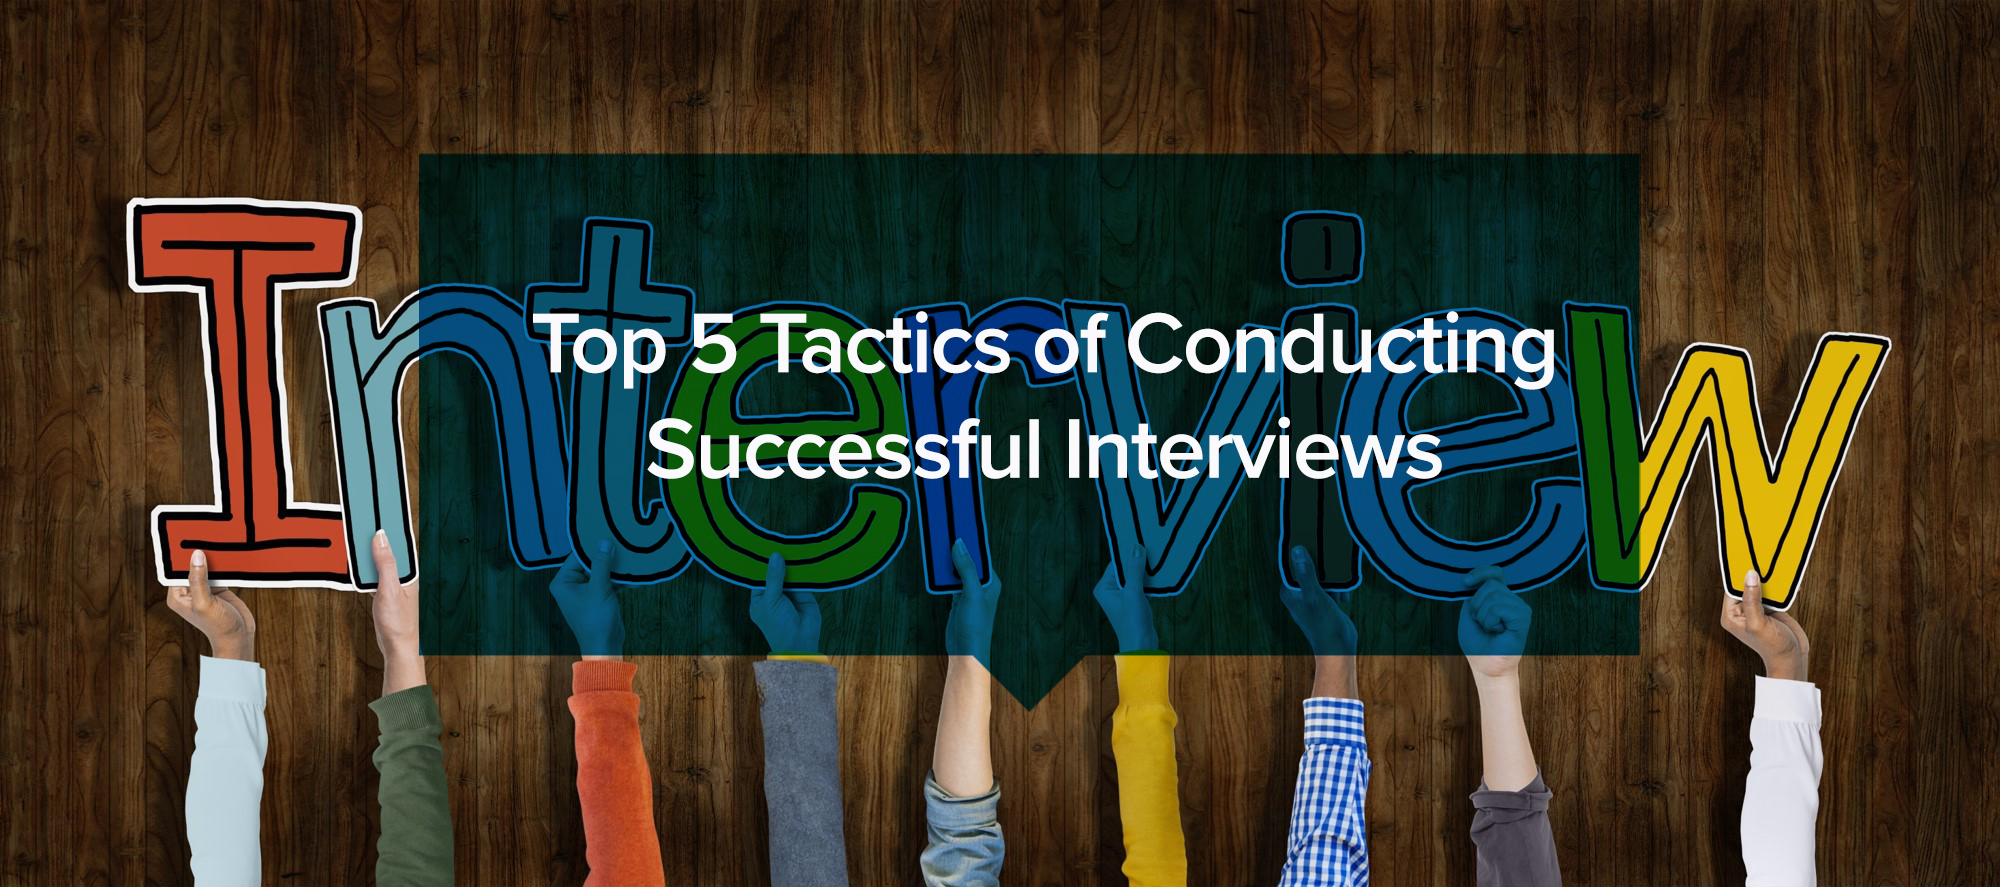 Top 5 tactics of conducting successful interviews